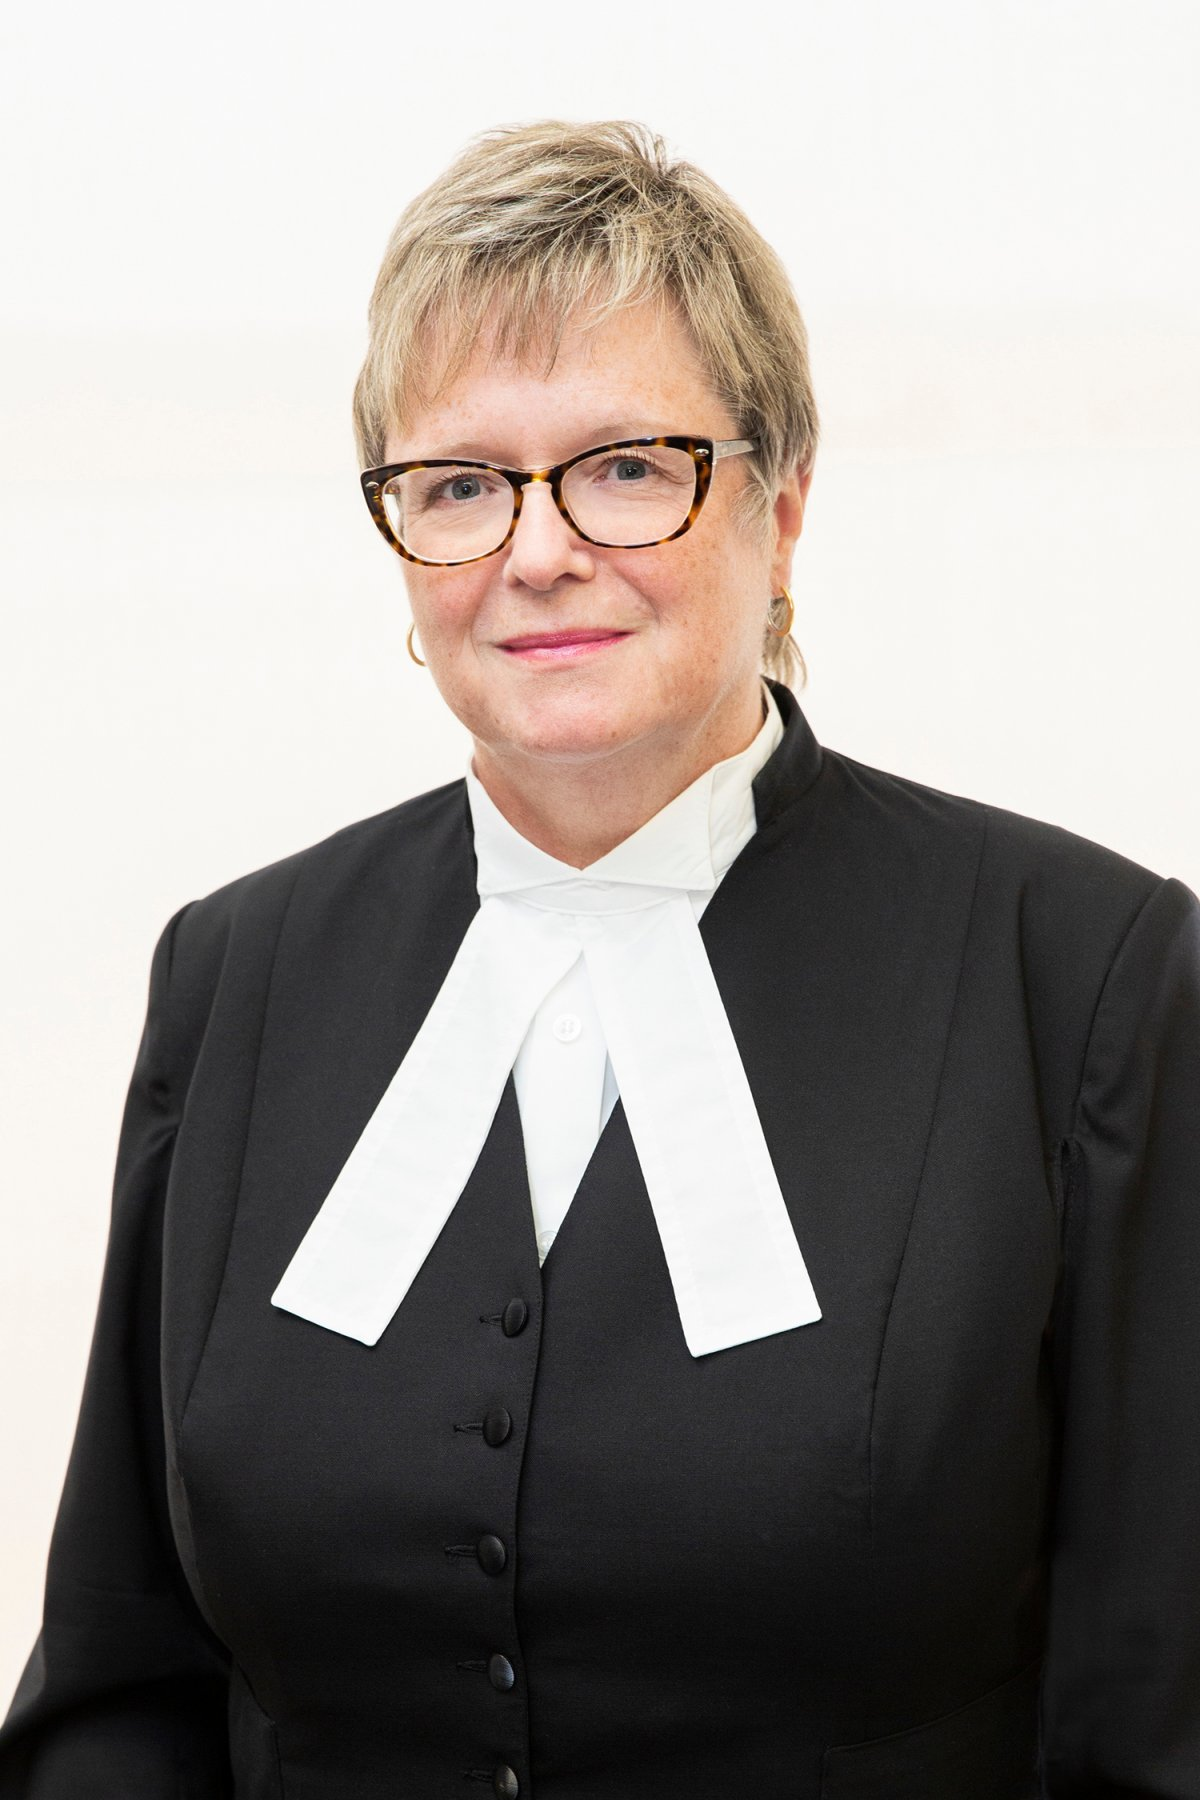 The Honourable Deborah K. Smith has been announced as the new chief justice of Nova Scotia Supreme Court.